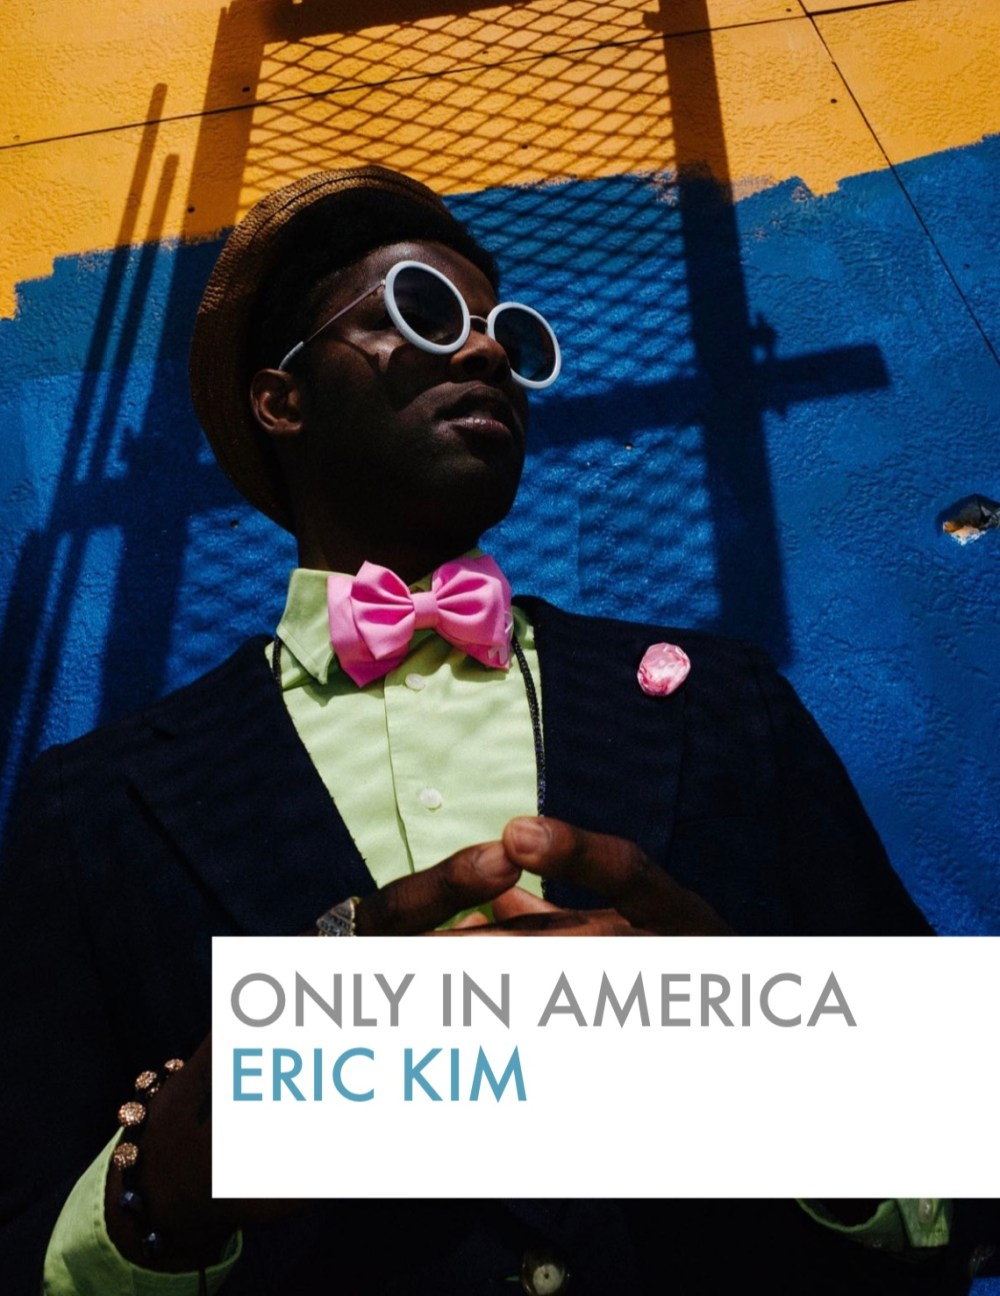 Only in america eric kim cover